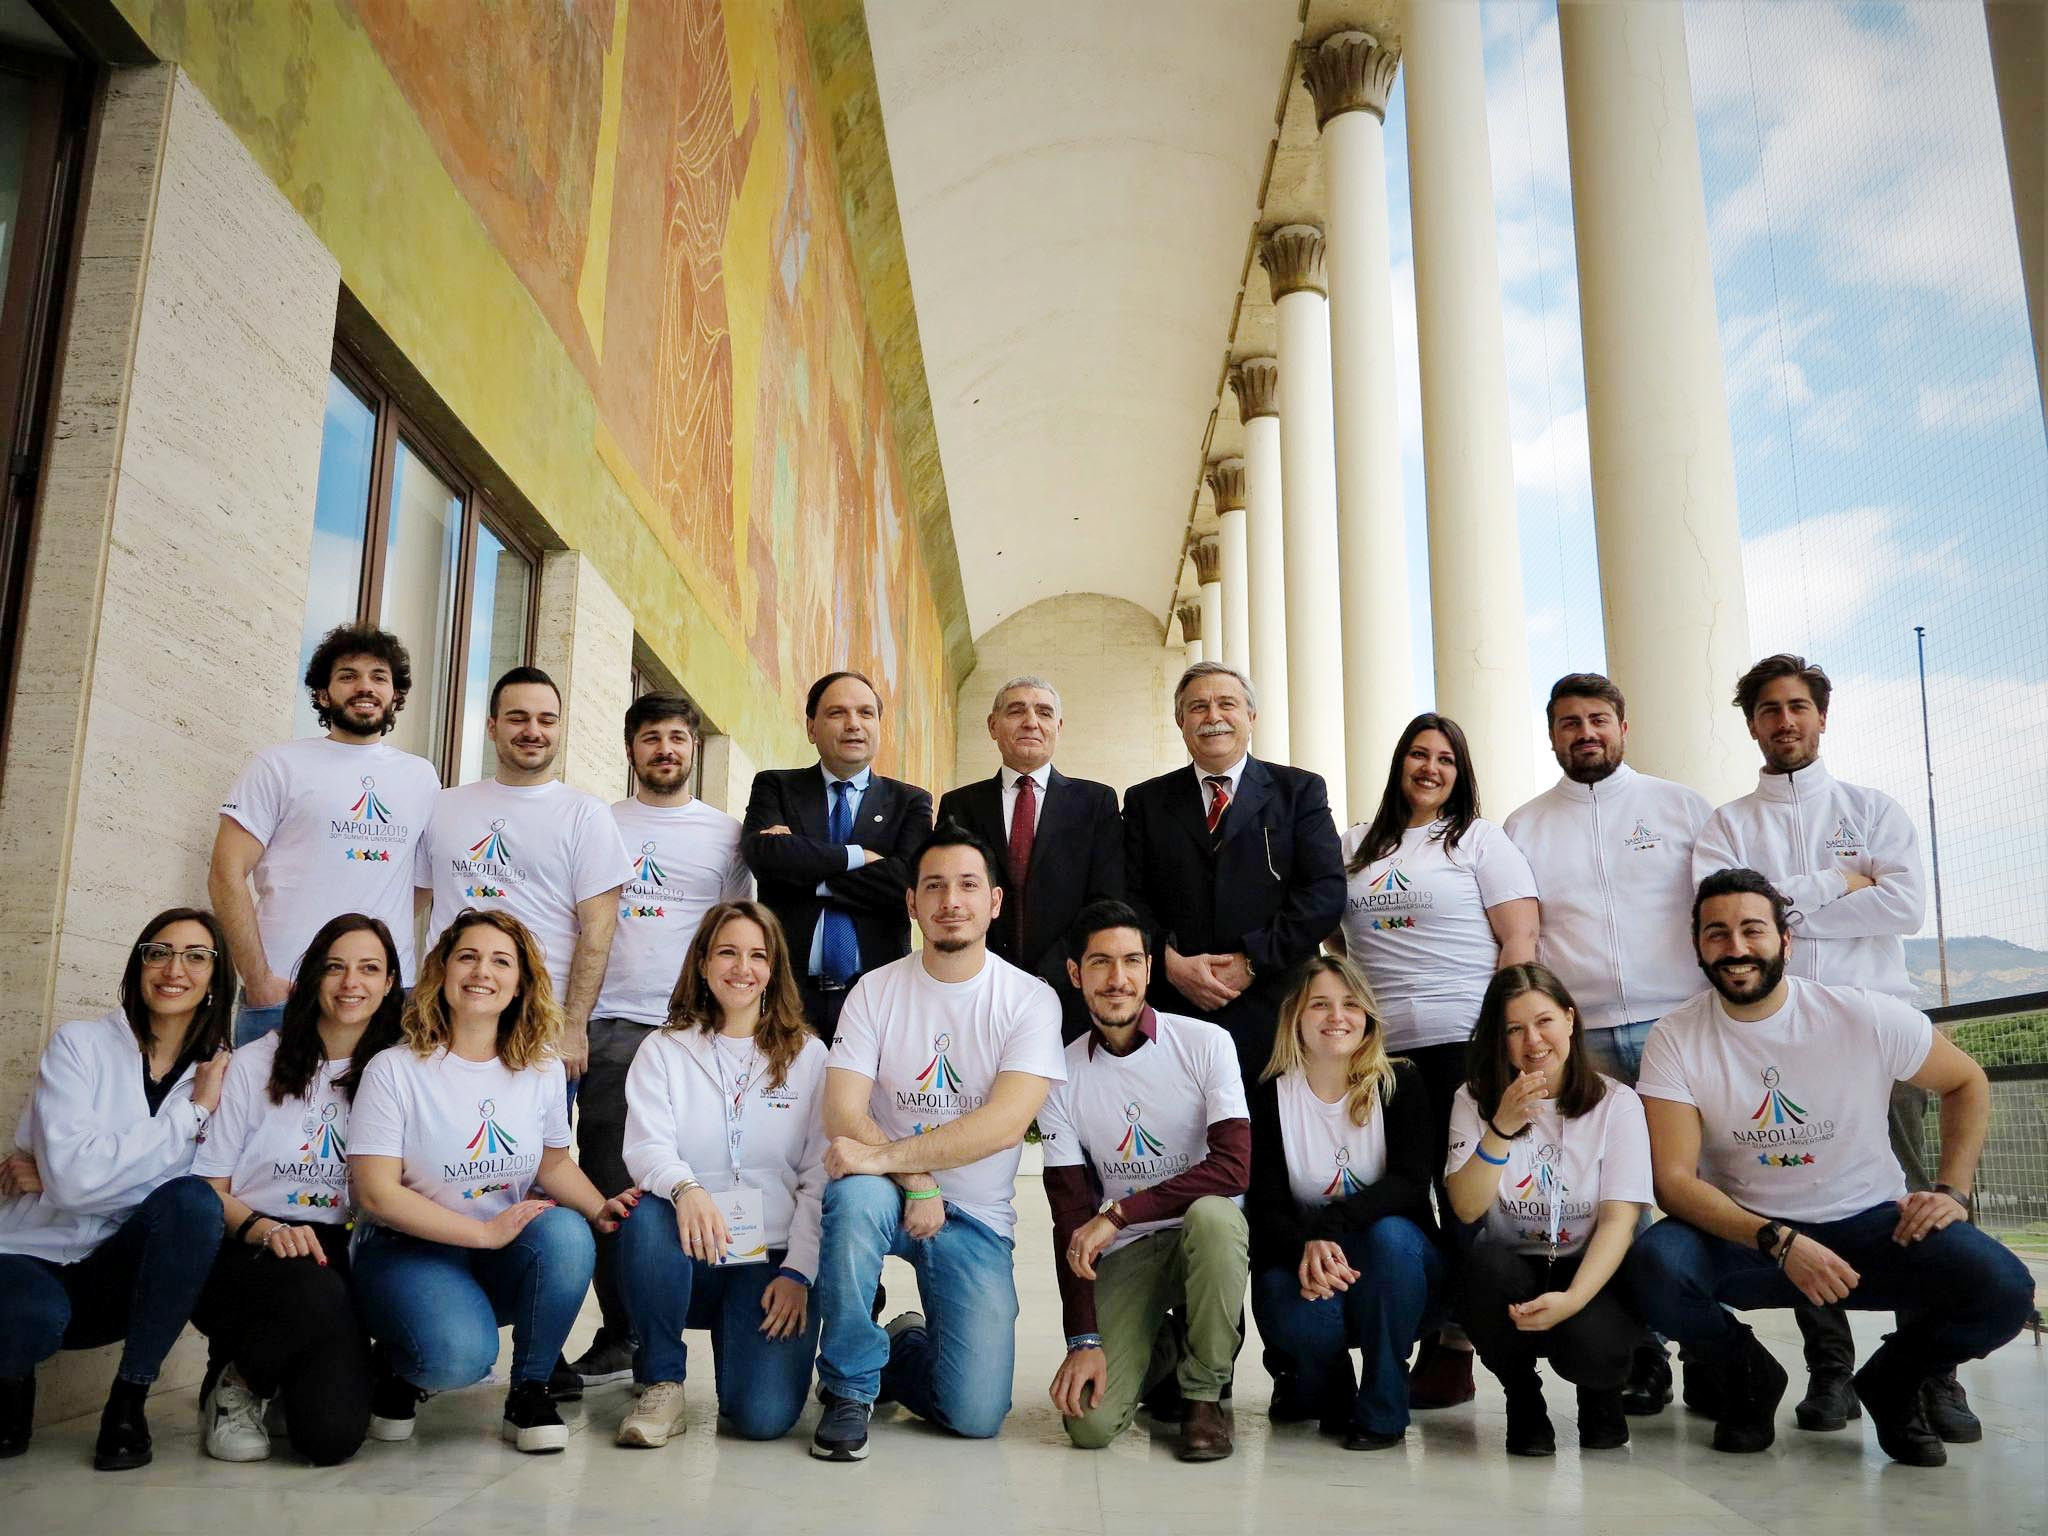 Olympic boxing champion launches volunteering campaign for Naples 2019 Summer Universiade